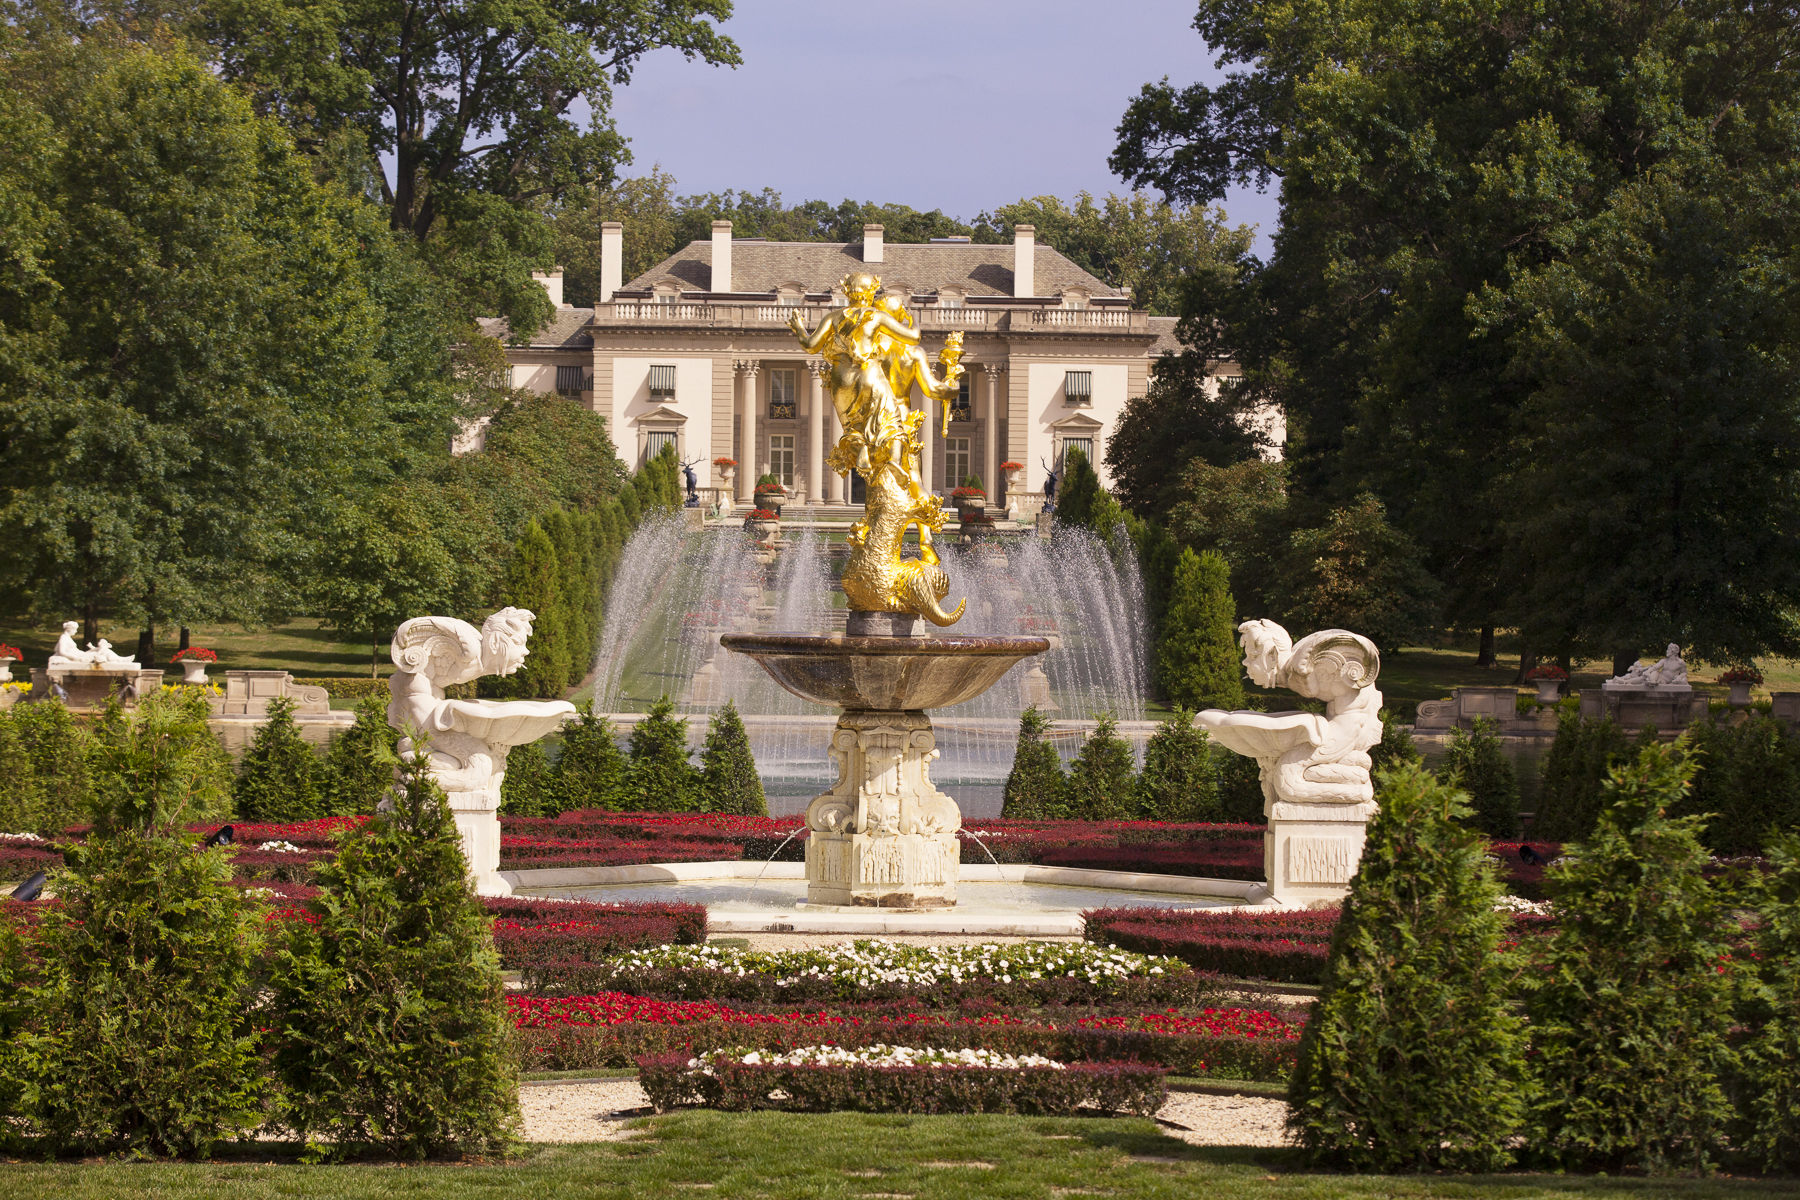 Delaware: Nemours Mansion and Gardens in Wilmington